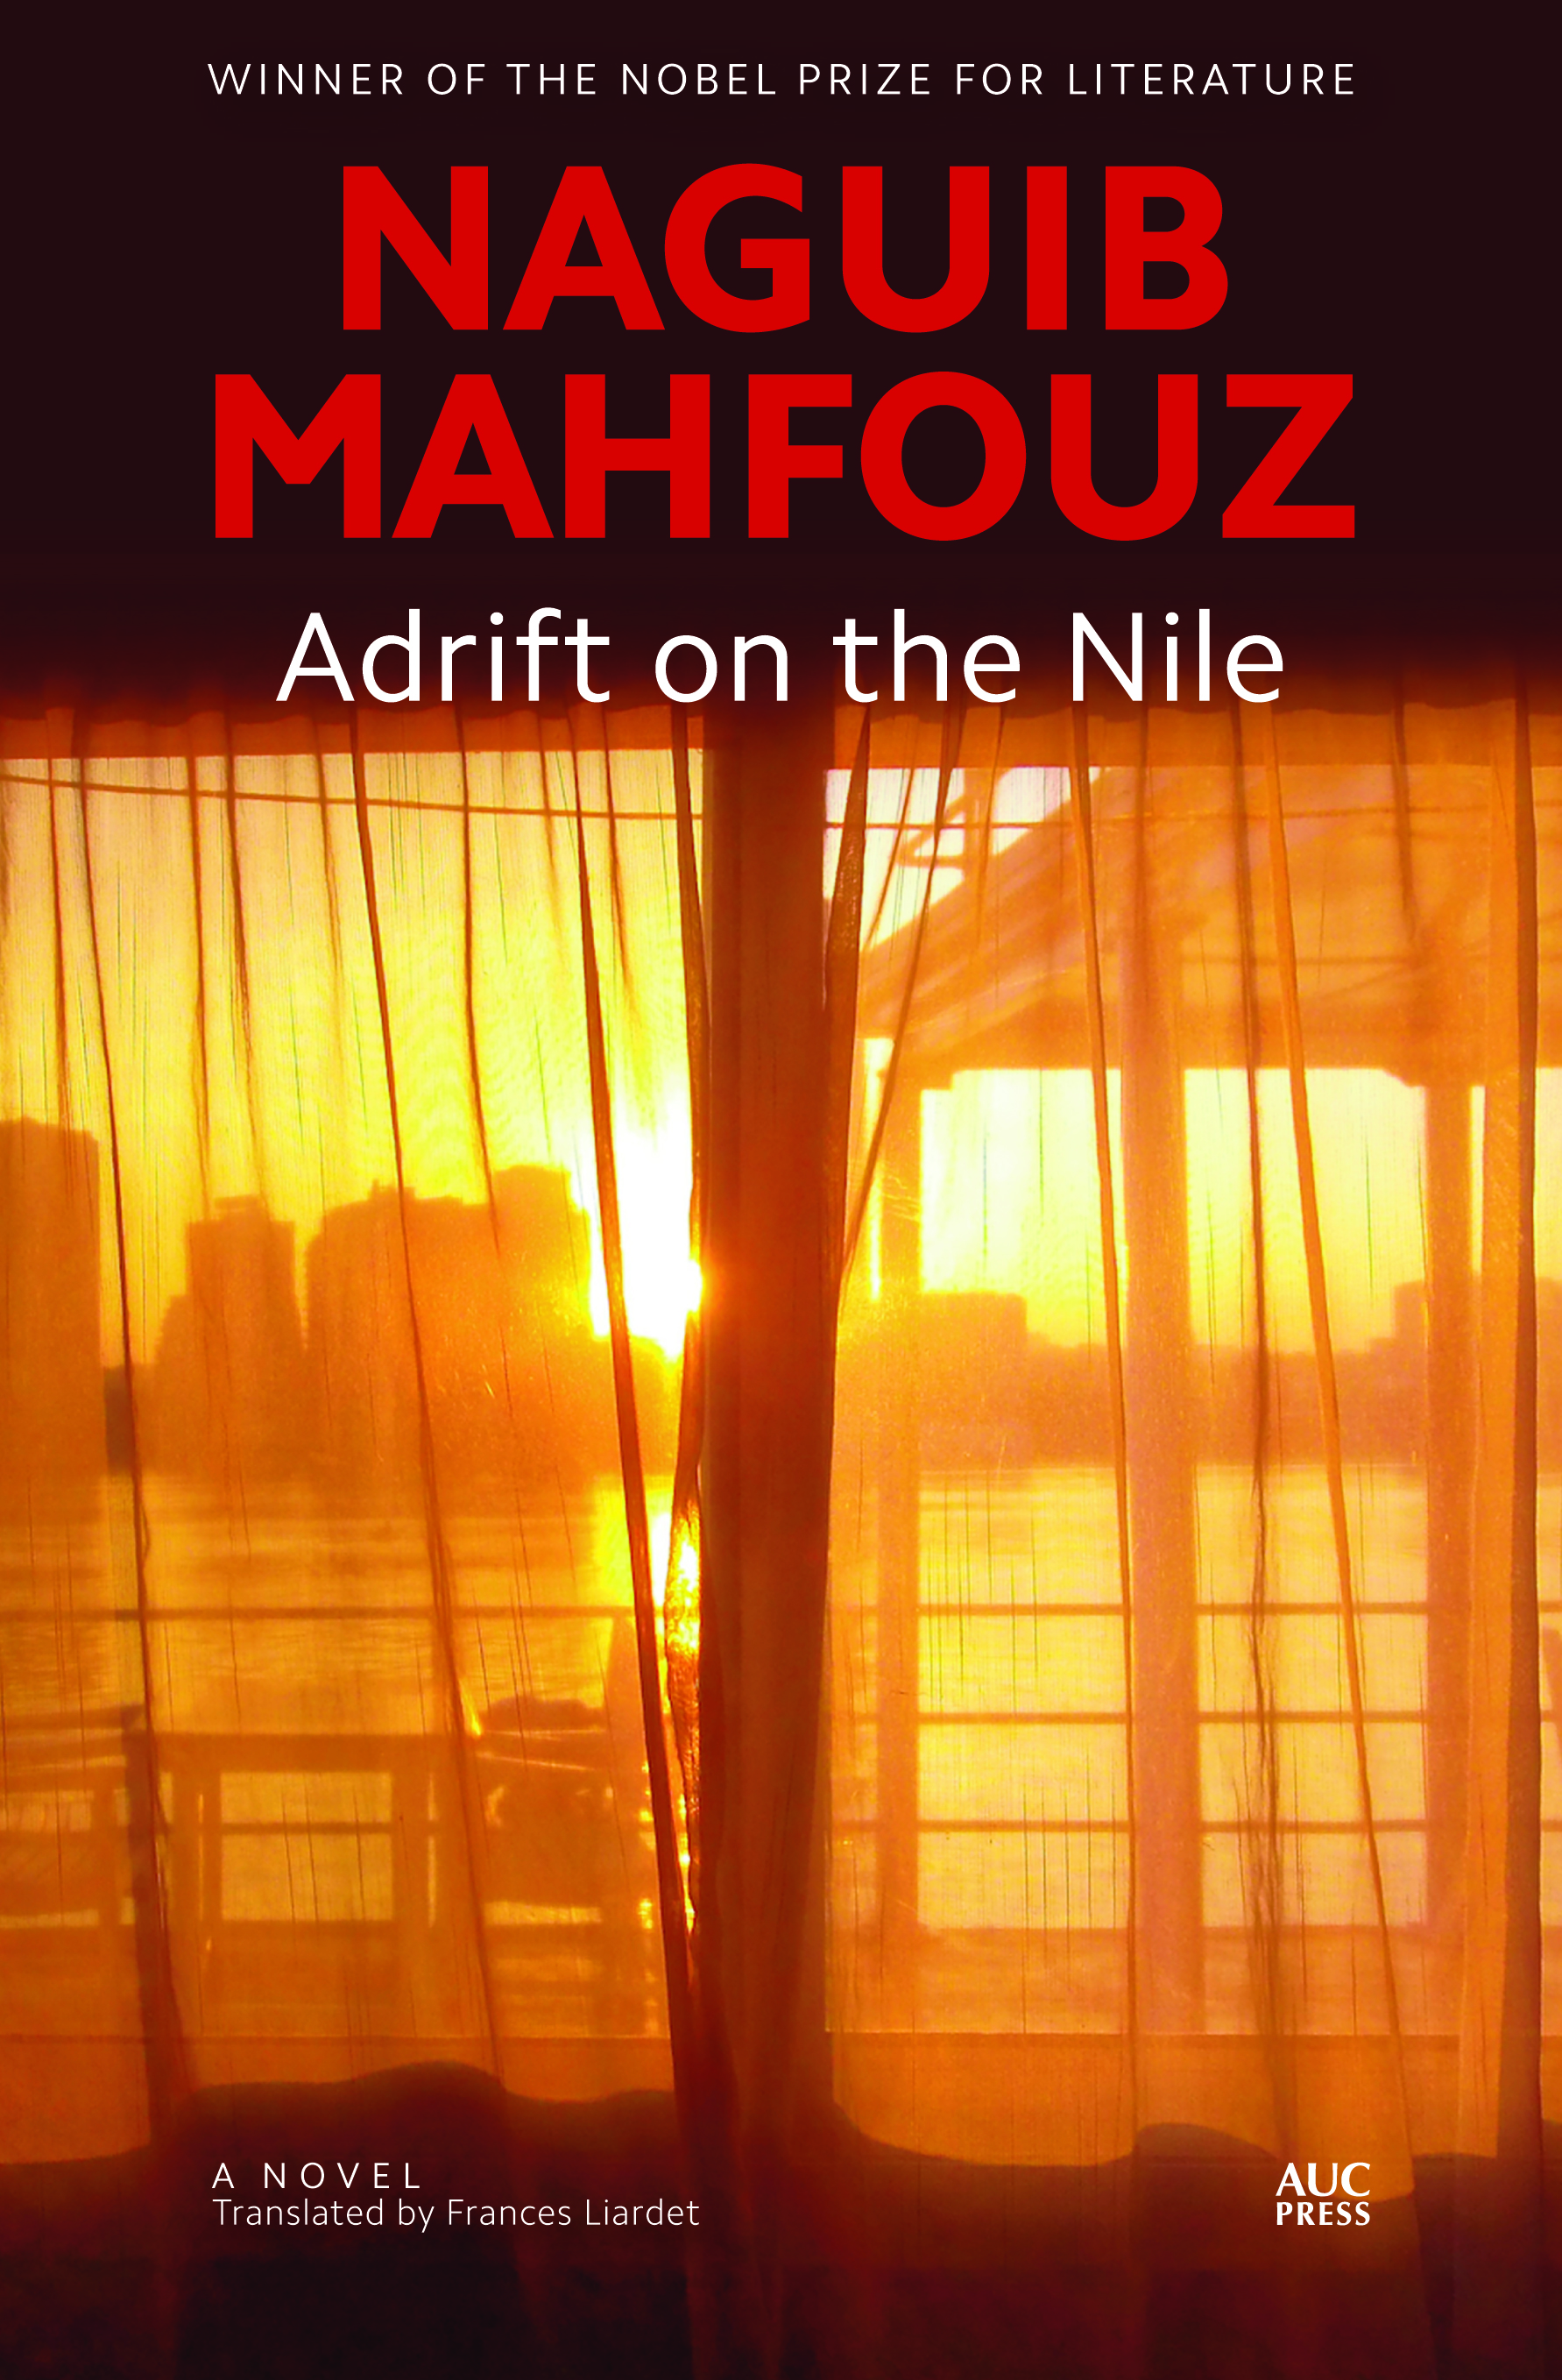 Adrift on the Nile